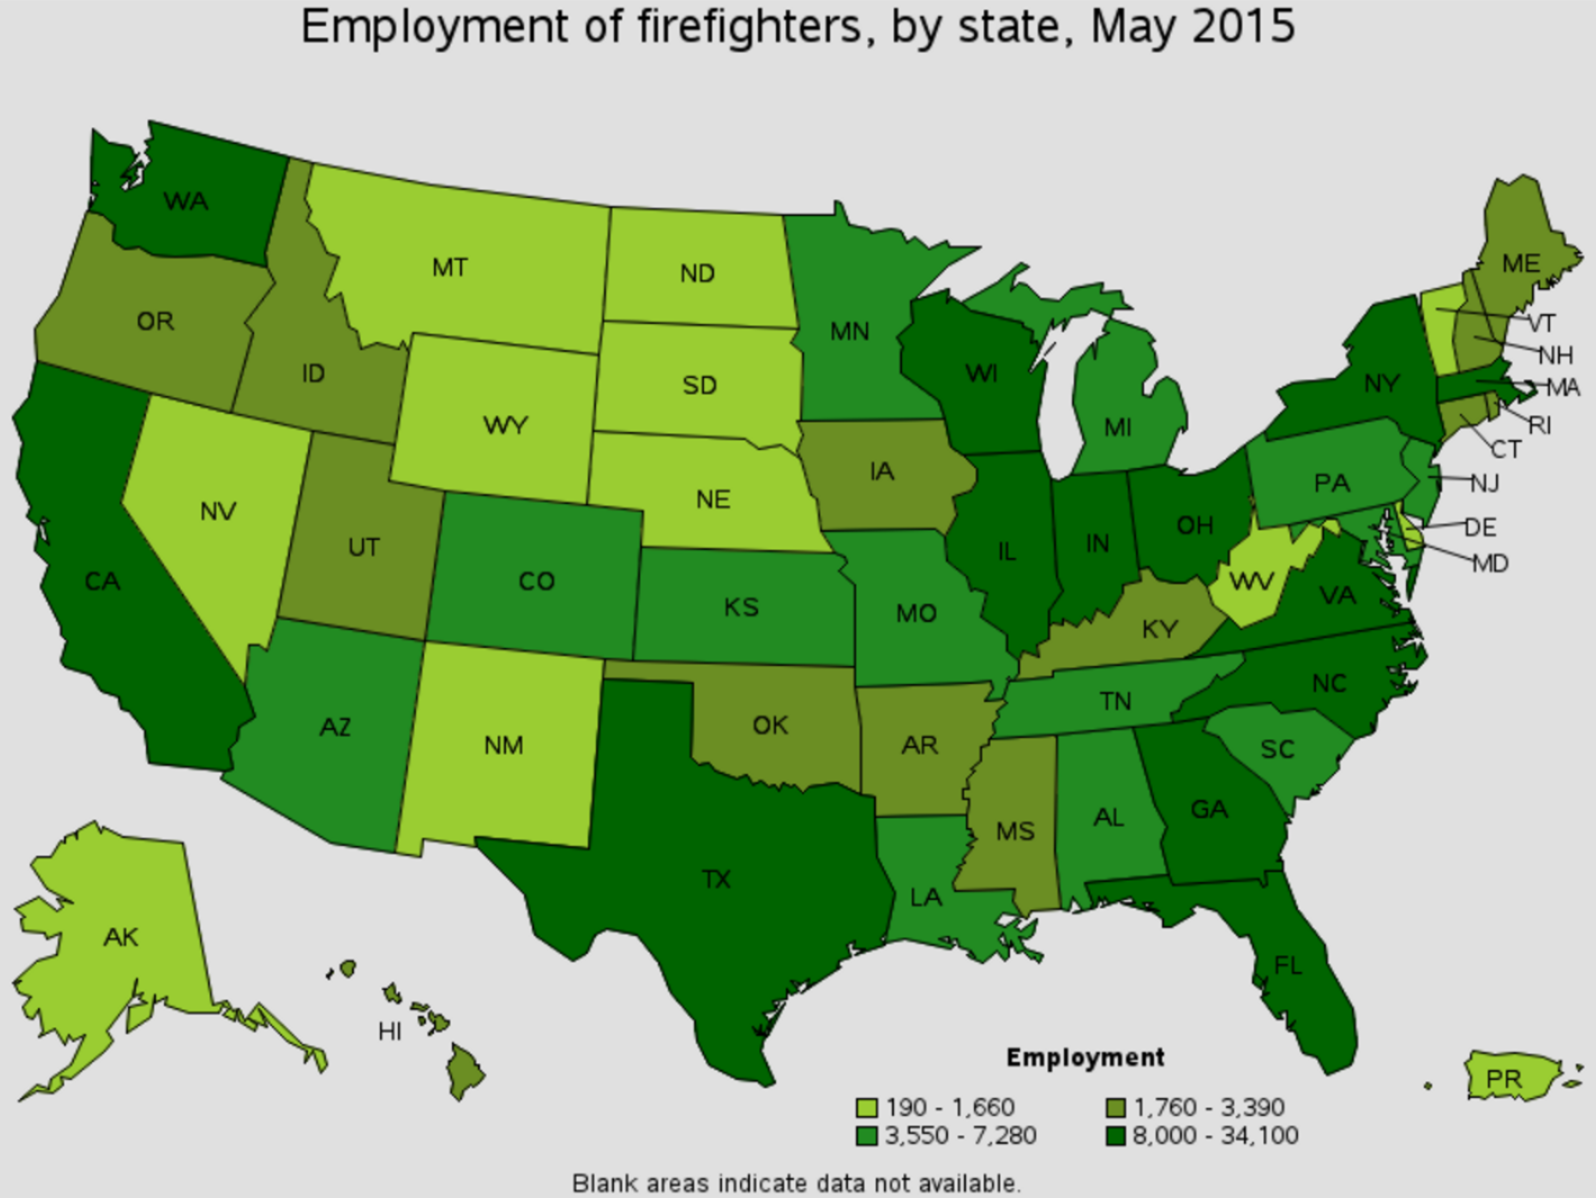 firefighter job outlook by state Shreveport Louisiana